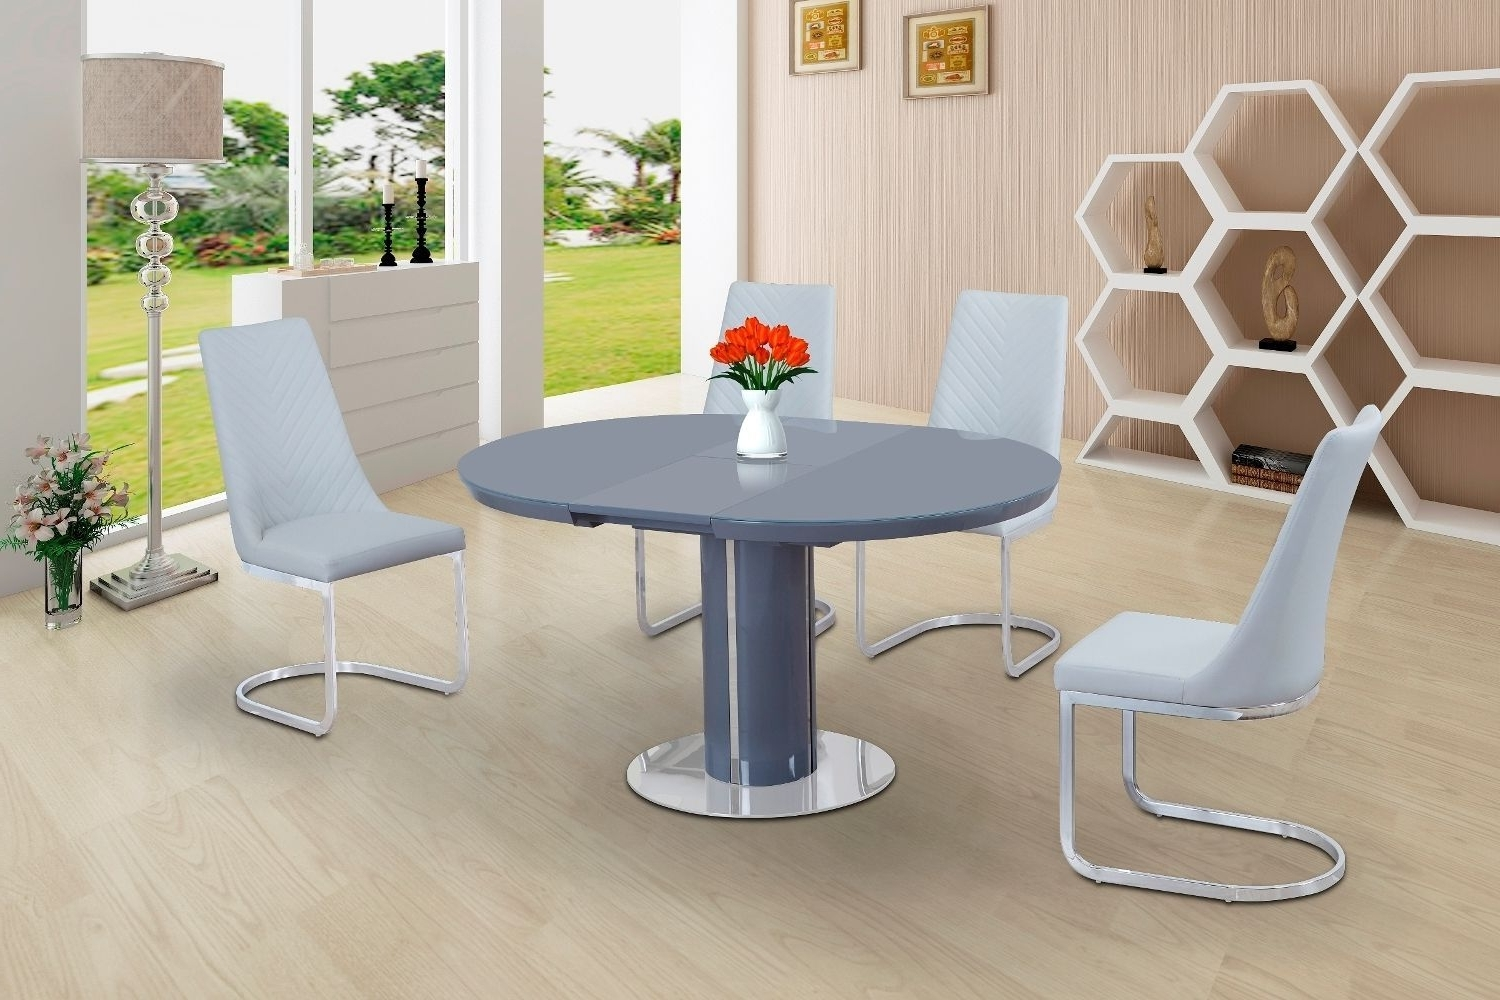 Newest Gloss Dining Tables Inside Eclipse Round Oval Gloss & Glass Extending 110 To 145 Cm Dining (View 10 of 25)